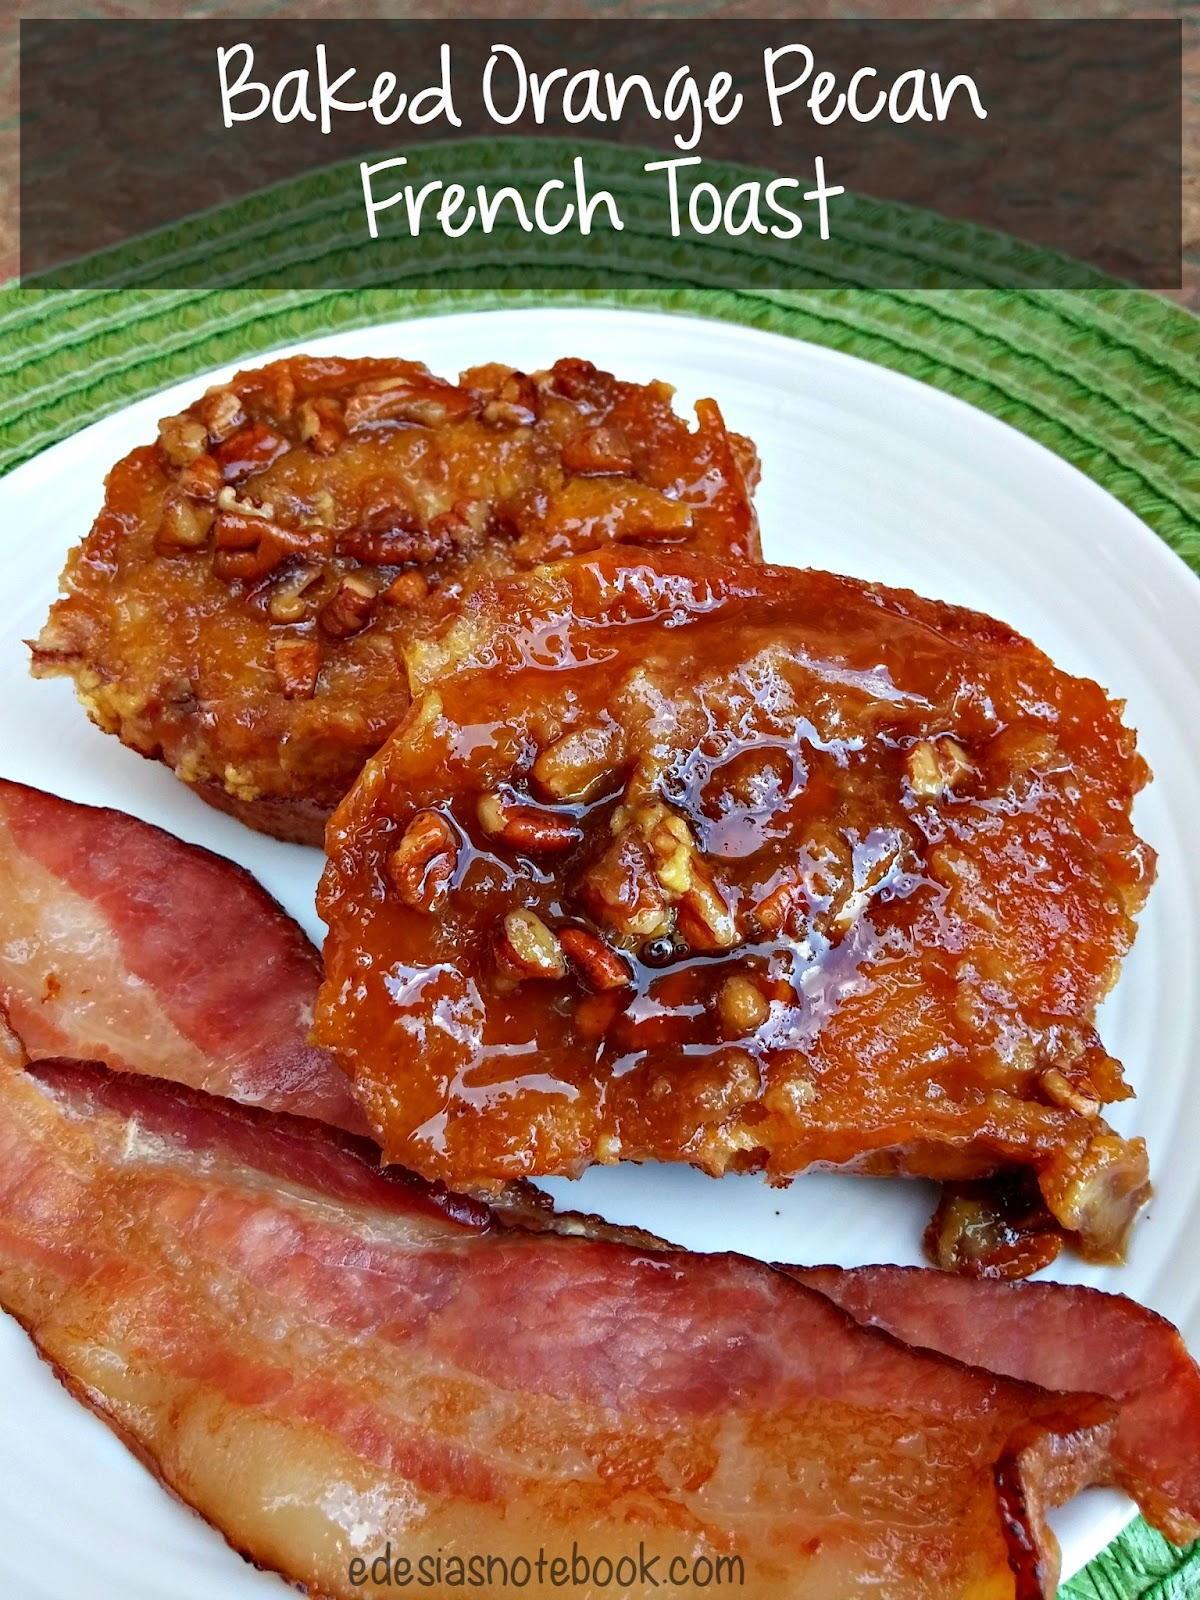 Baked Orange Pecan French Toast ~ Edesia's Notebook